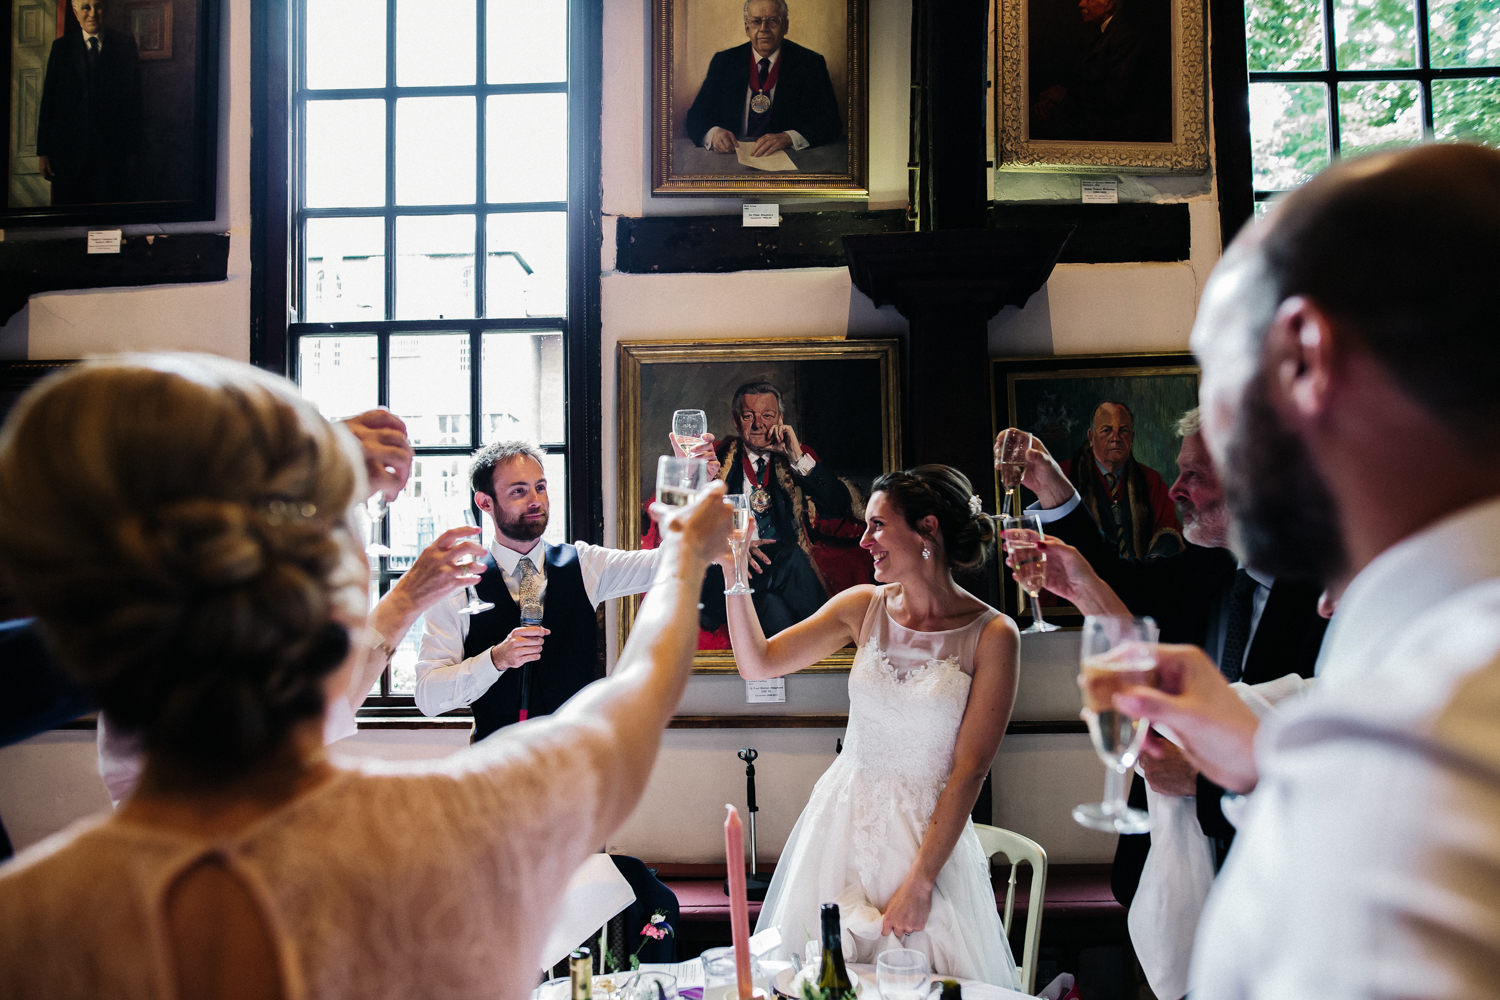 creative-relaxed-wedding-photography-stop-motion-films-teesside-north-east-yorkshire-0051.jpg